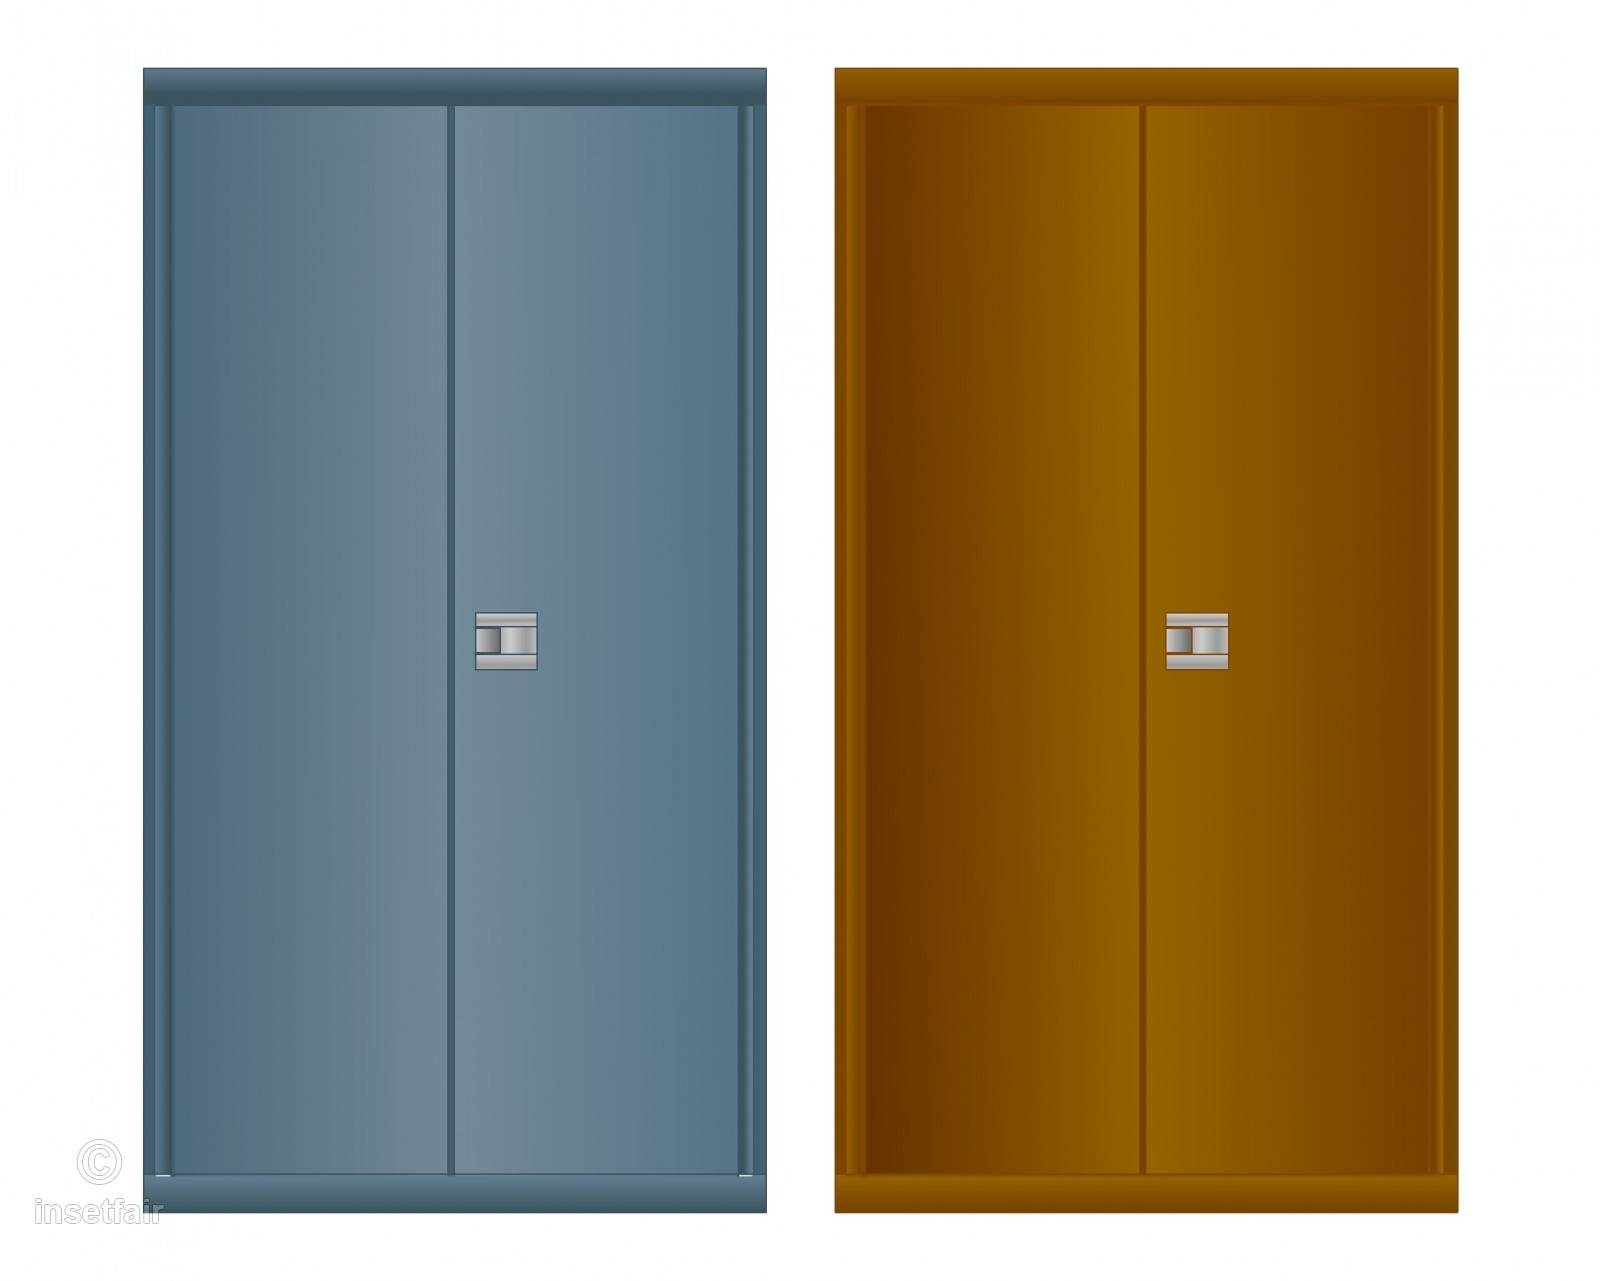 Wooden wardrobe front view vector images.